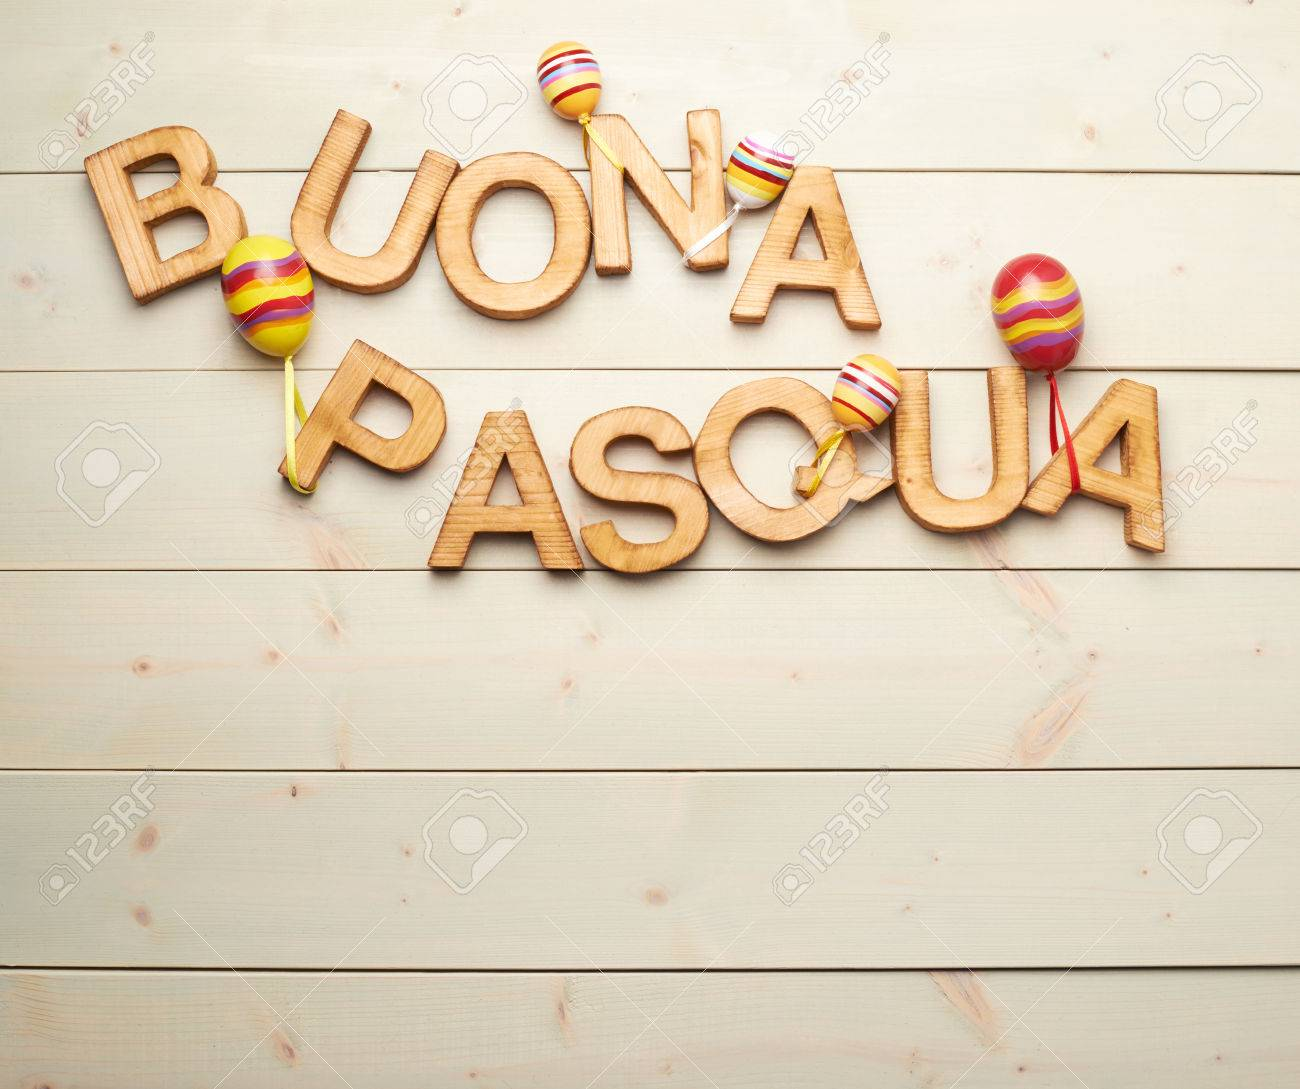 Words Buona Pasqua As Happy Easter In Italian Language Made Of